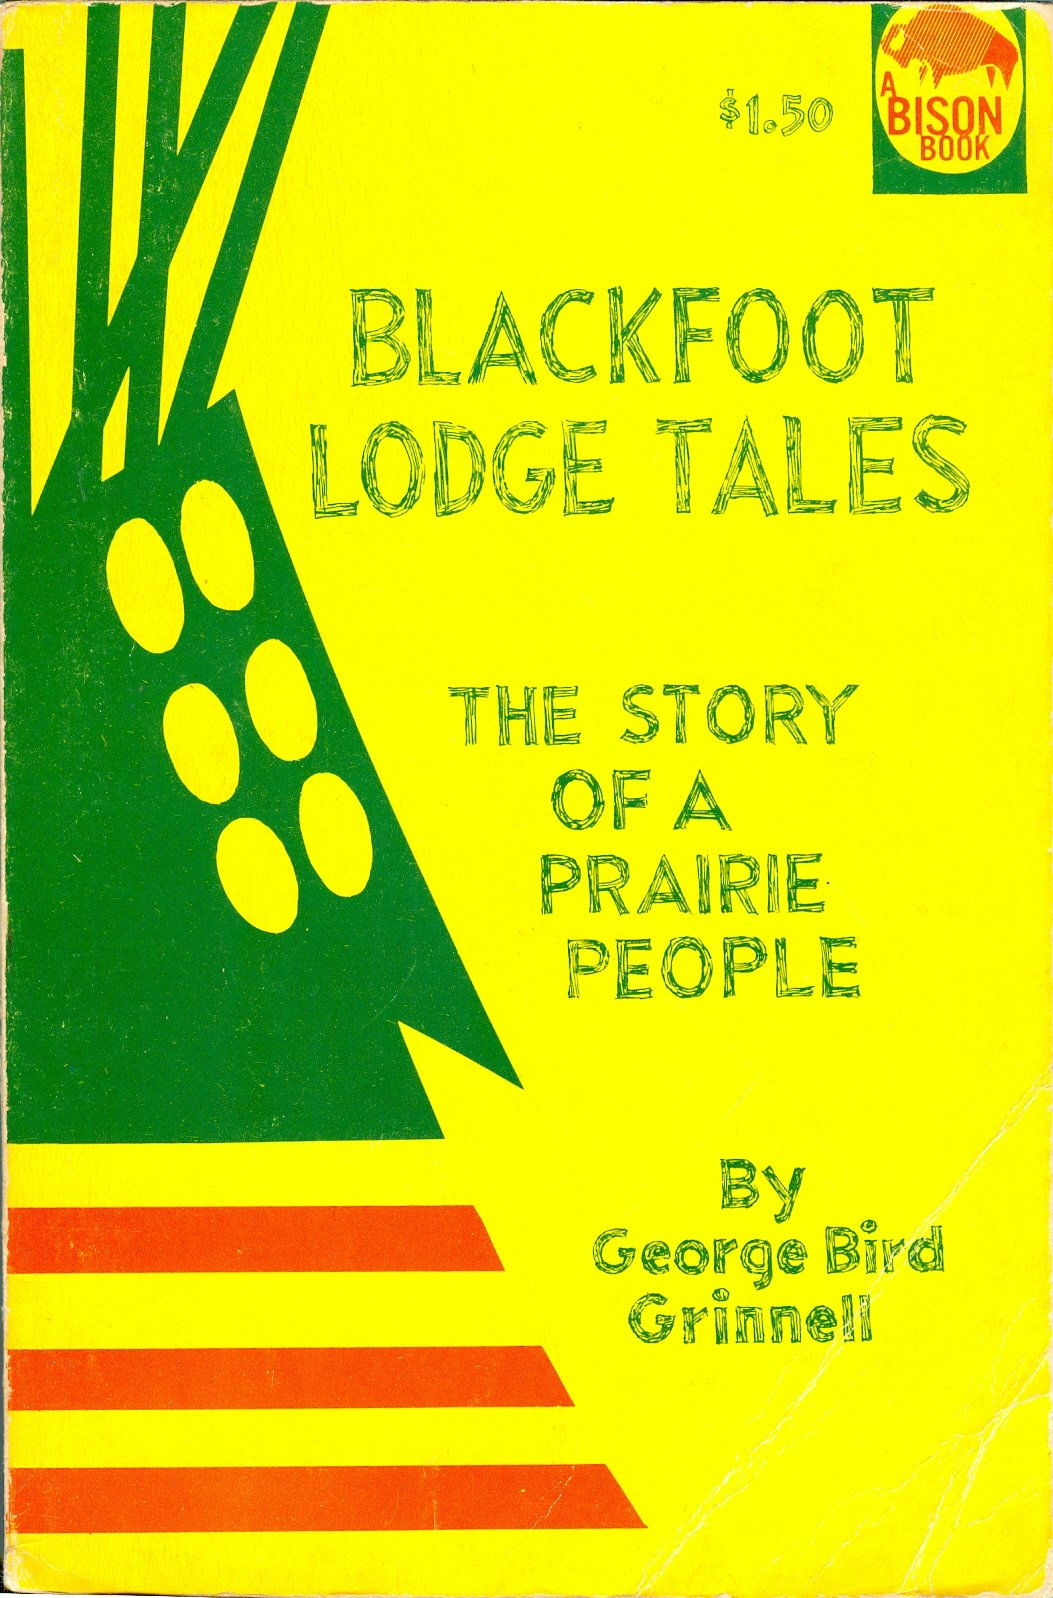 Blackfoot Lodge Tales - The Story of a Prairie People, George Bird Grinnell